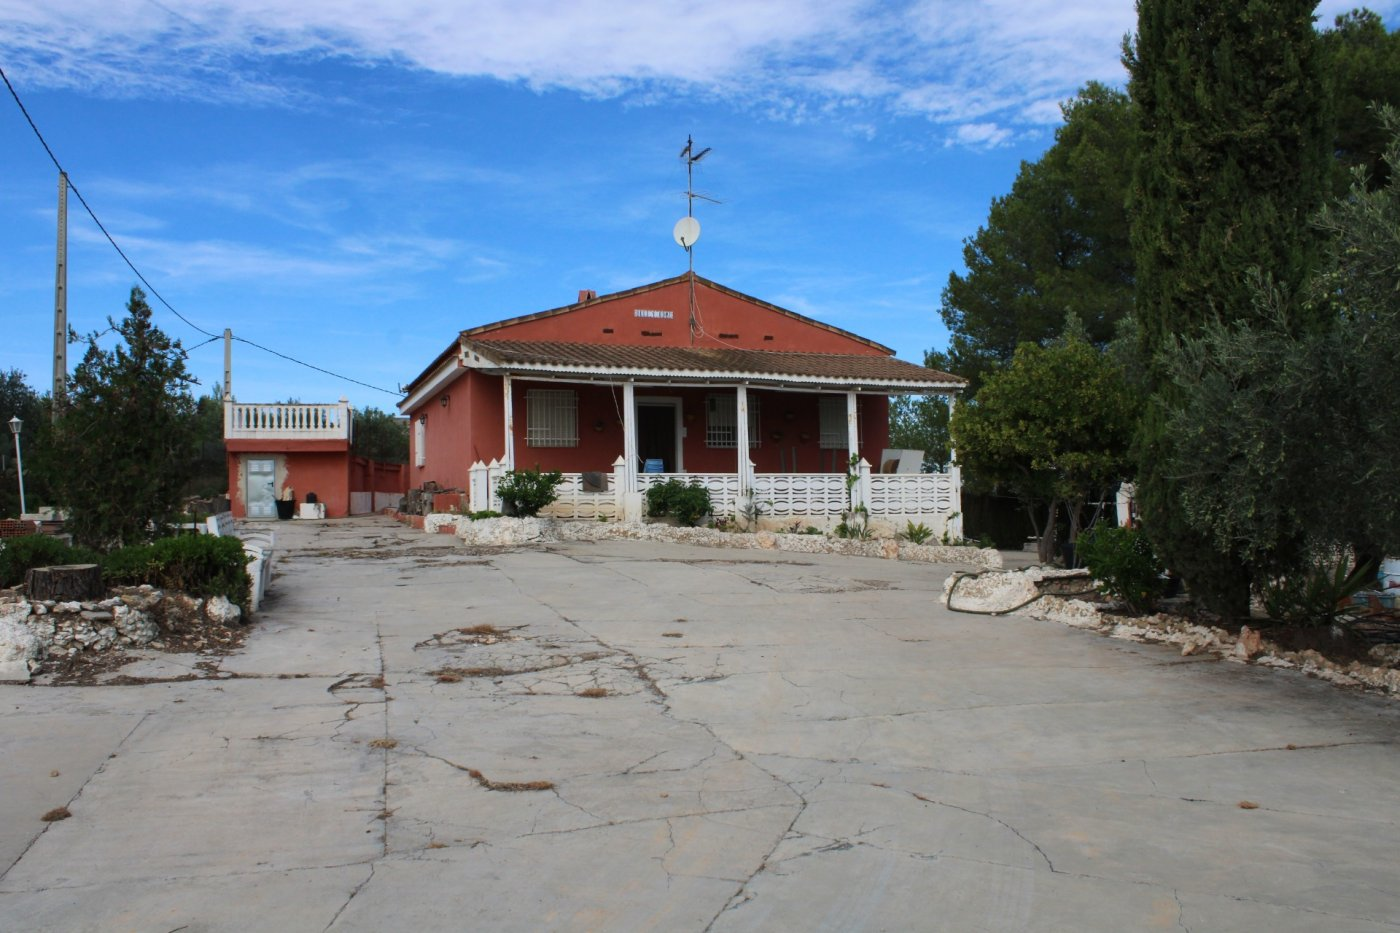 Chalet for sale in Pedralba, Pedralba